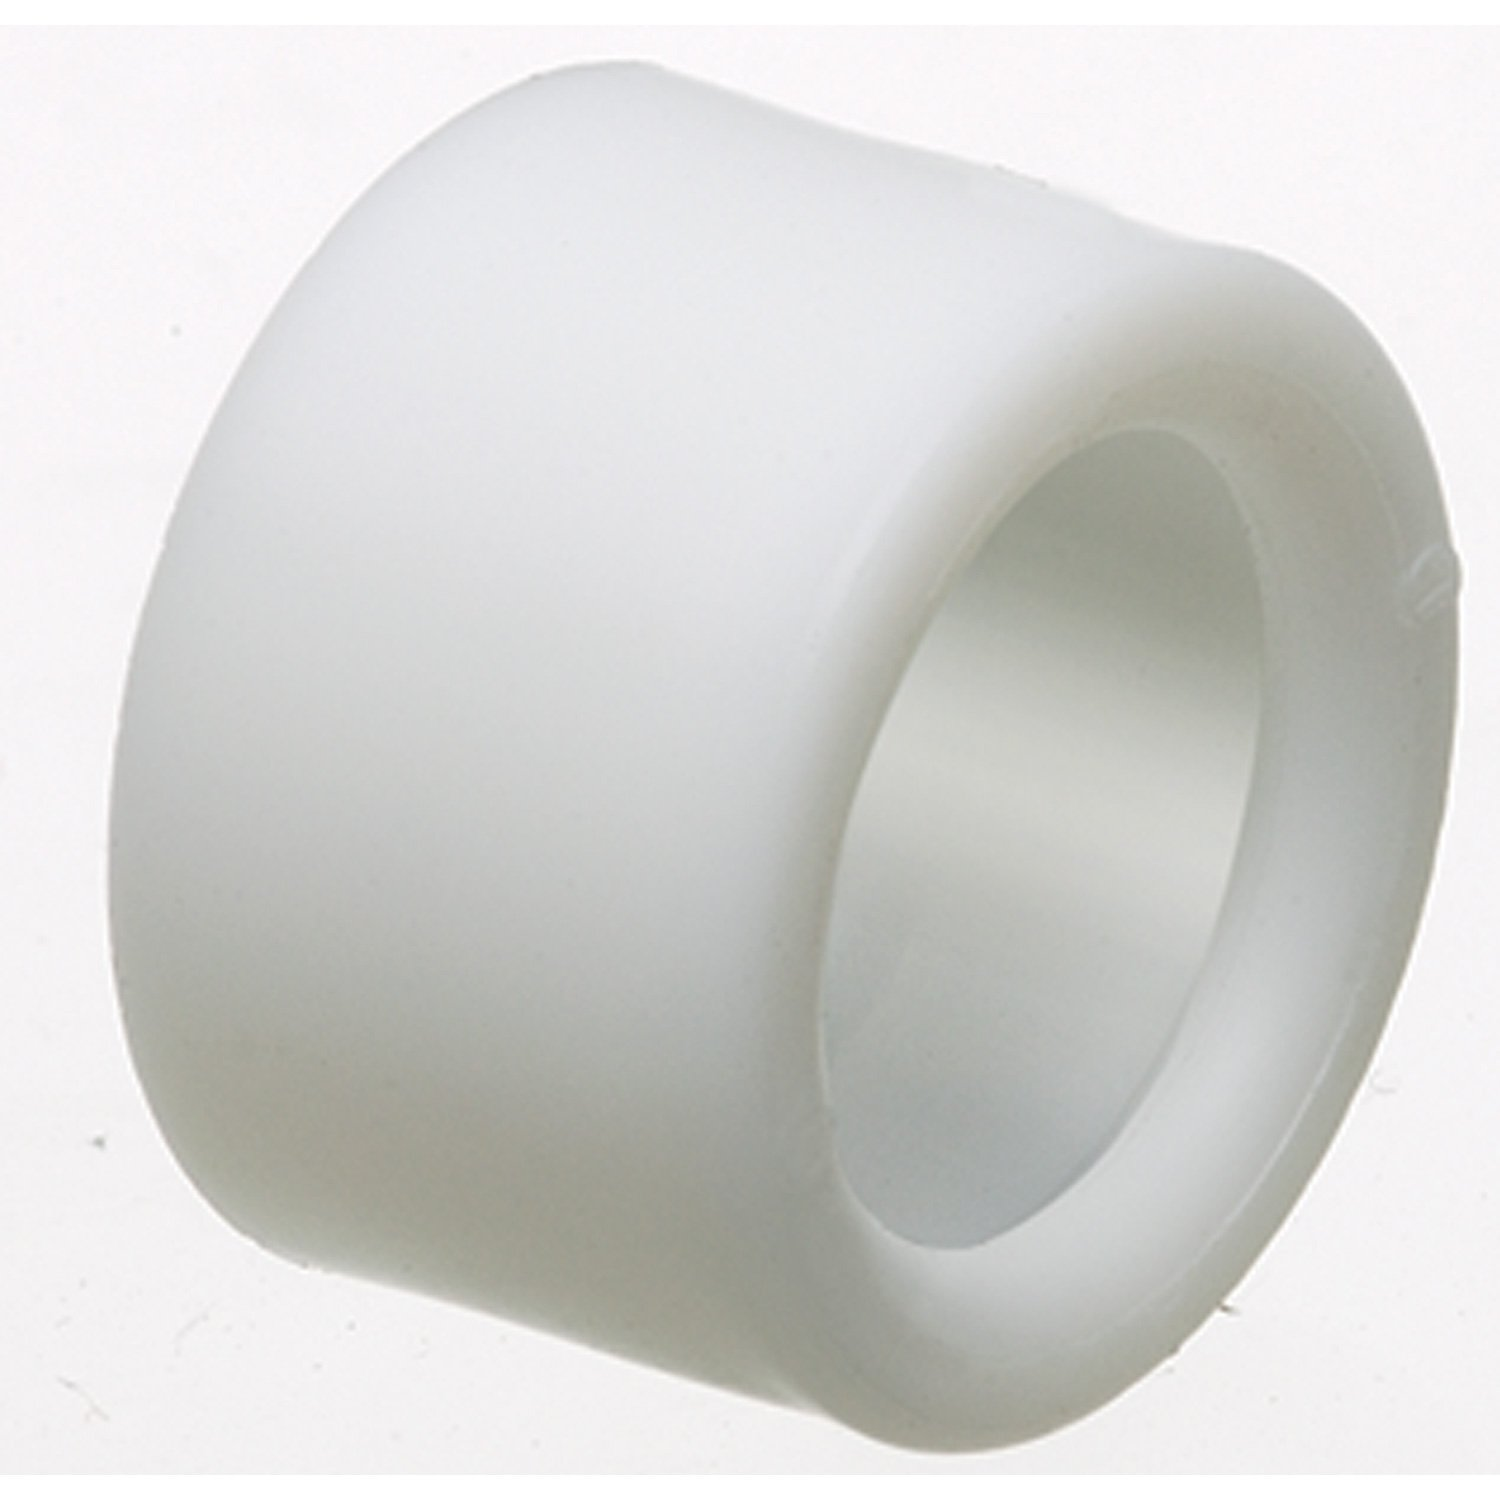 Arlington EMT75-100 EMT Insulating Conduit Bushing for Electrical Metal Tubing, White, 3/4-Inch, 100-Pack Arlington Industries